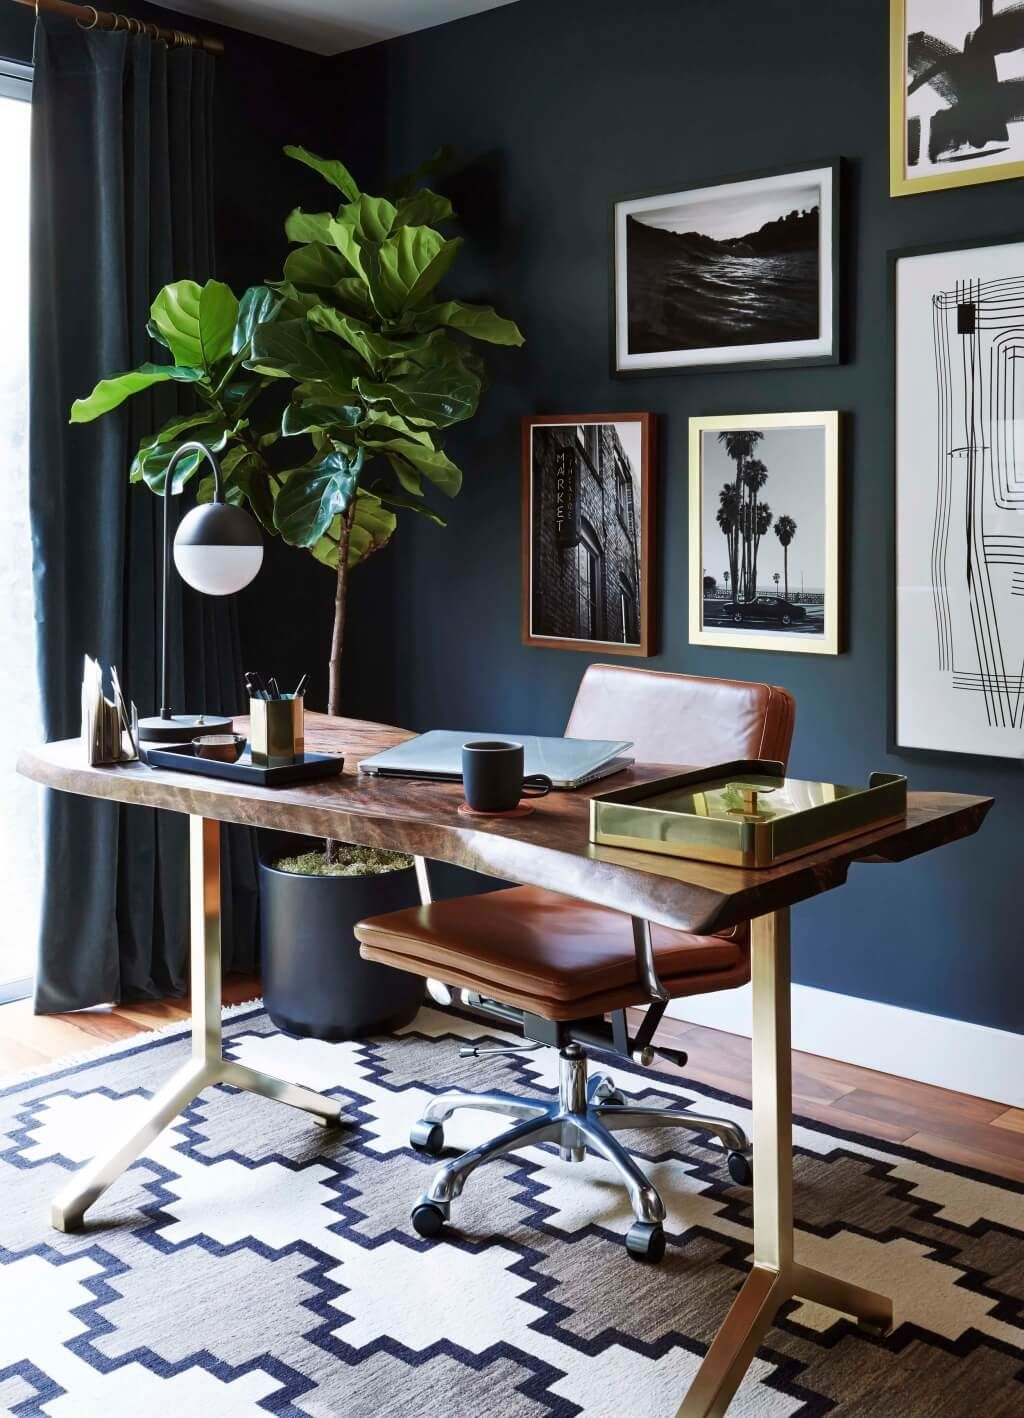 How To Choose A Rug Rug Placement Size Guide Cozy Home Office